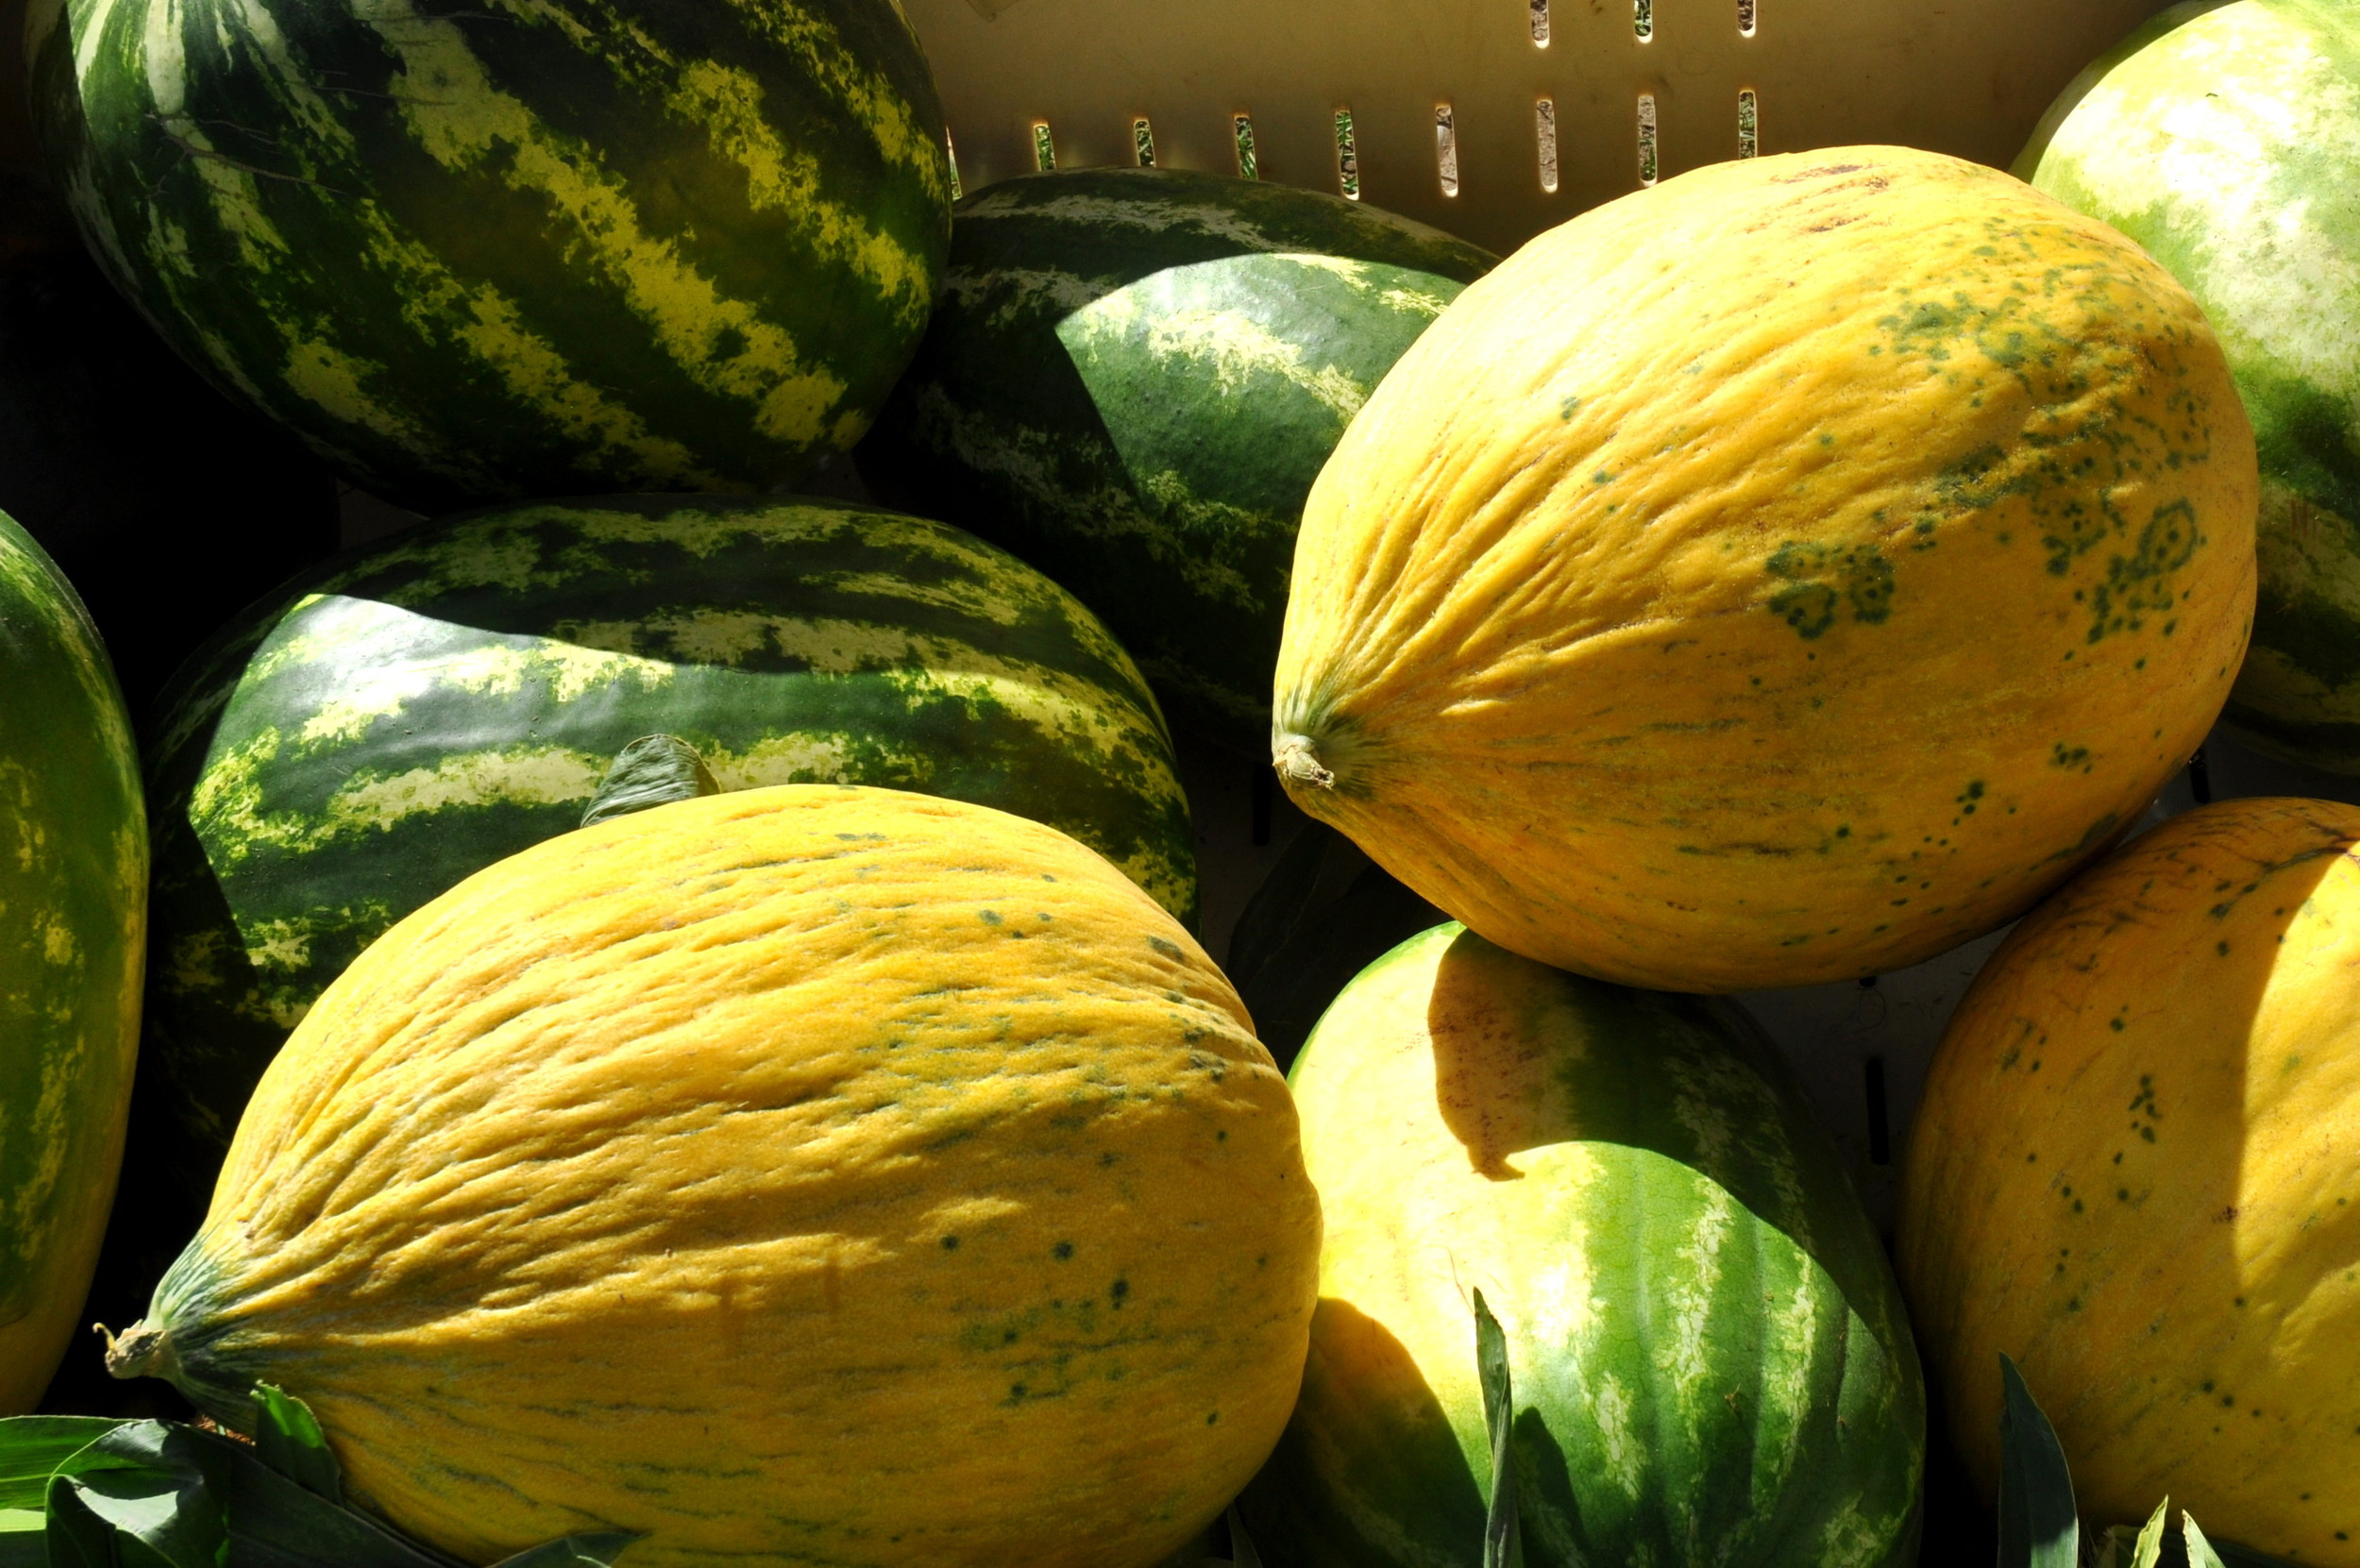 Ginormous melons from Lyall Farms at Ballard Farmers Market. Copyright Zachary D. Lyons.